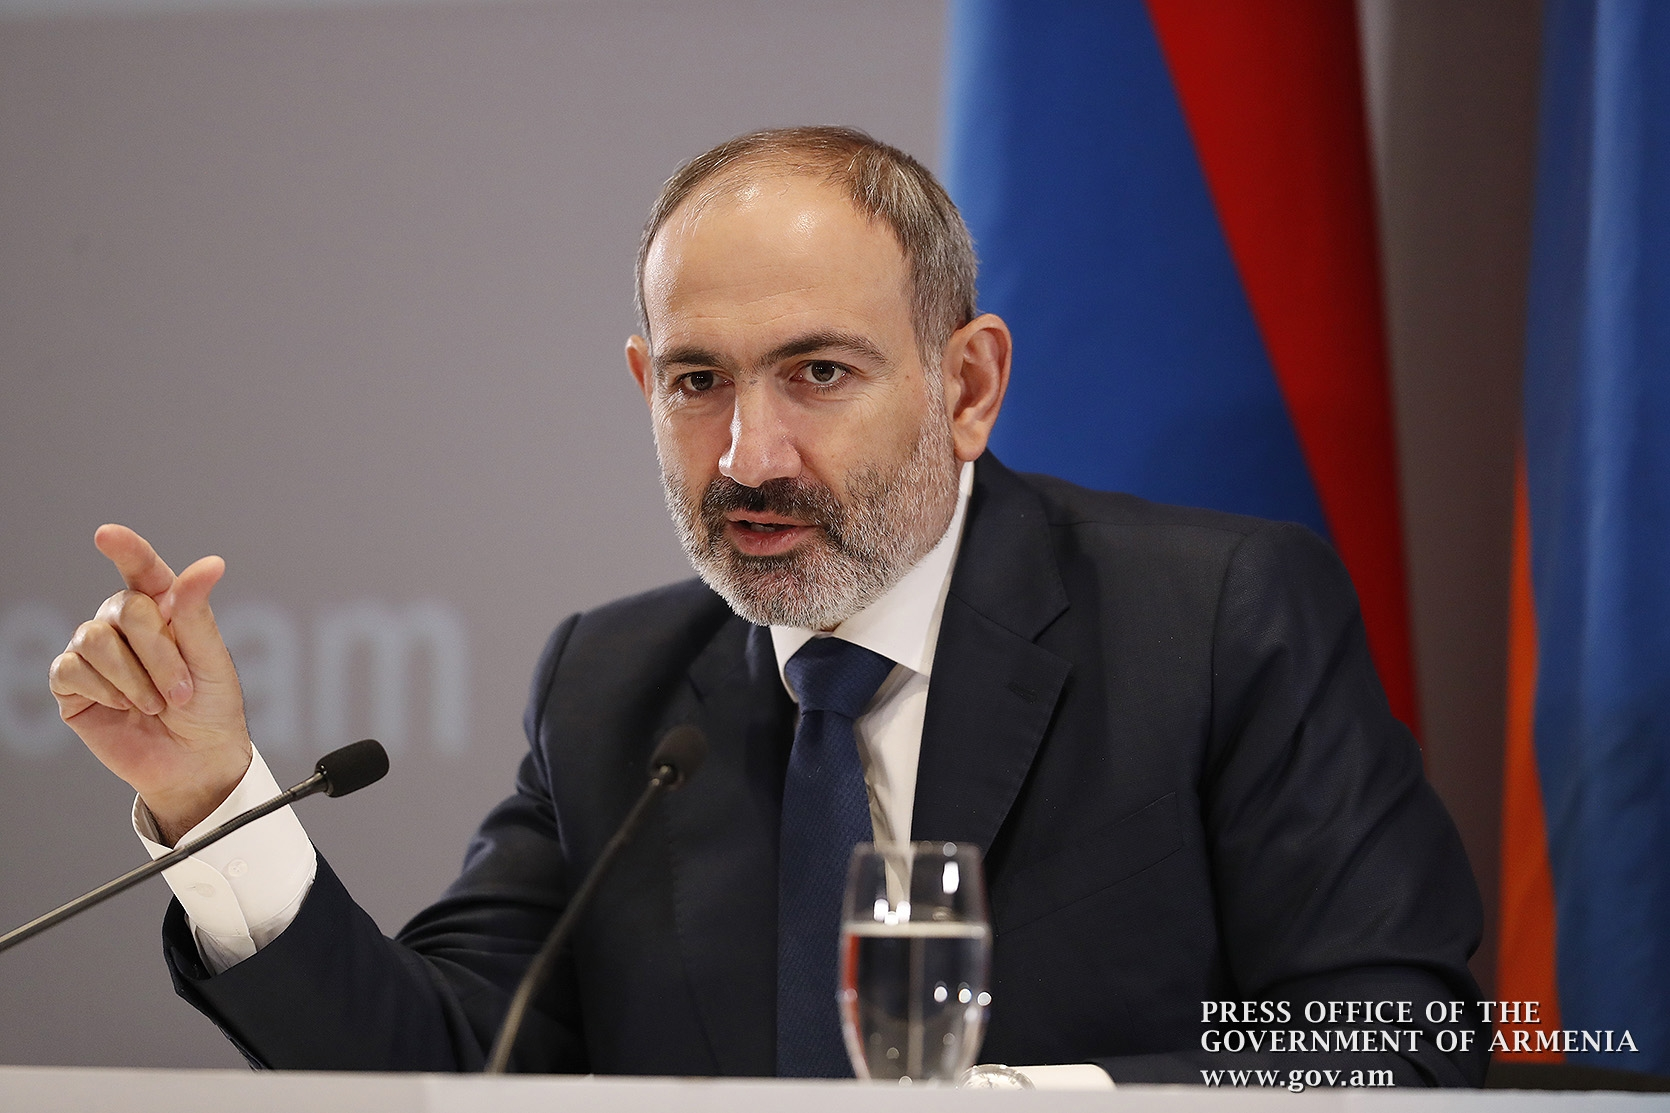 Armenian PM calls into question basis of talks with Azerbaijan